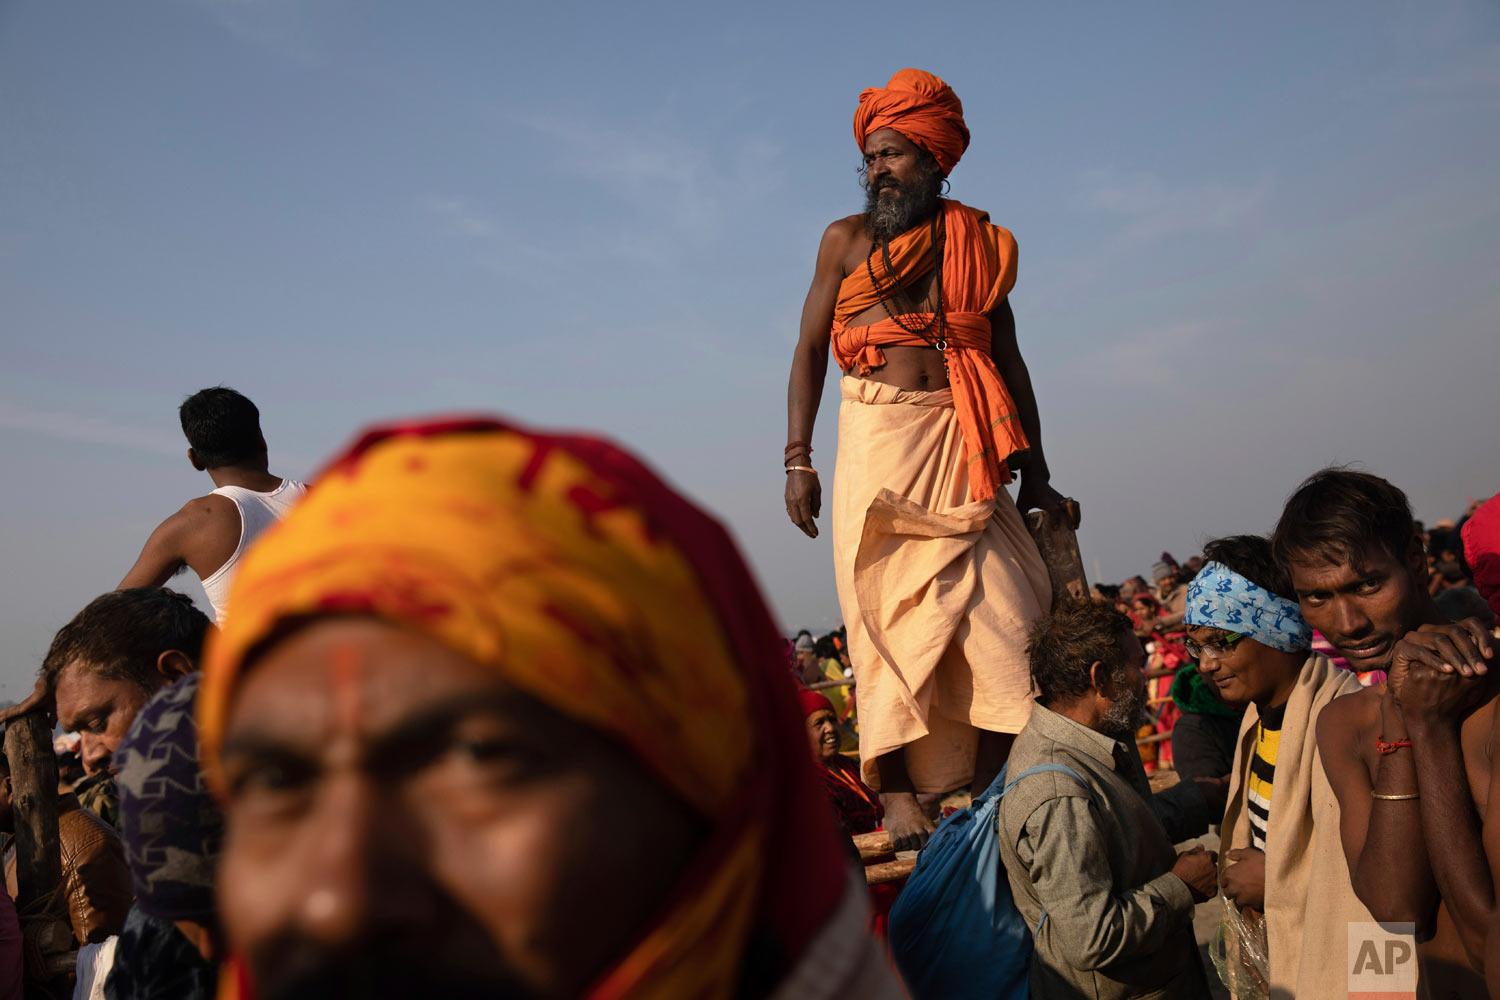 Hindus gather for a spiritual cleansing dip at Sangam, the confluence of the rivers Ganges, Yamuna and mythical Saraswati, during the Kumbh Mela festival in Prayagraj, India on Jan. 15, 2019. (AP Photo/Bernat Armangue)